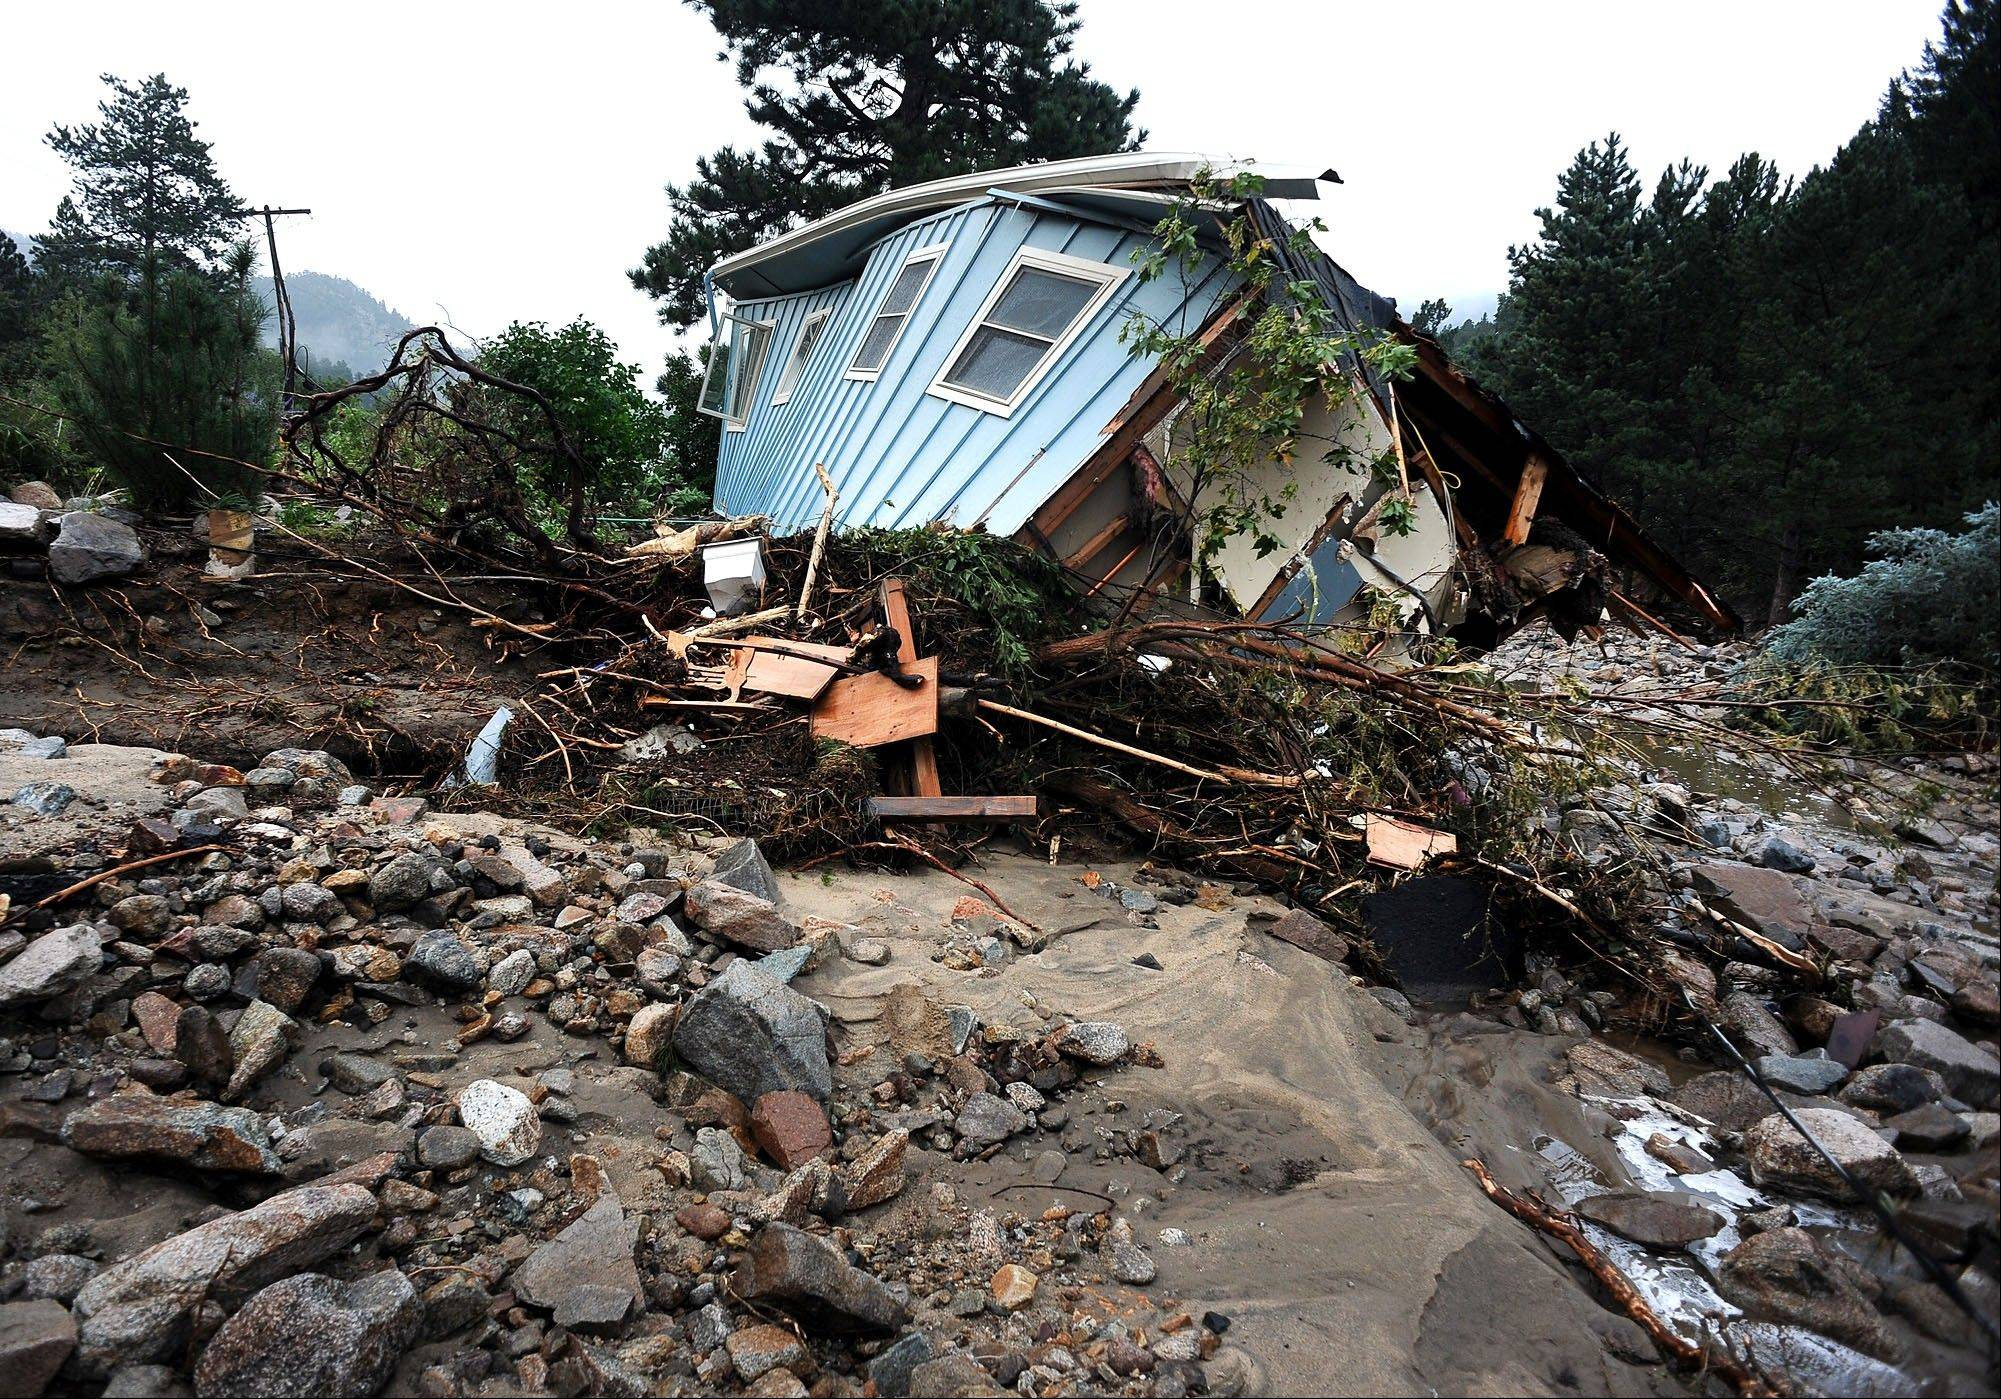 A house lays completely demolished in what was the path of the recent floods that have destroyed the town of Jamestown, Colo., on Sunday. No one has been able to access the town until late Sunday afternoon when crews finalized repairs of the upper portion of the road for emergency traffic only. The town has no infrastructure or running water.